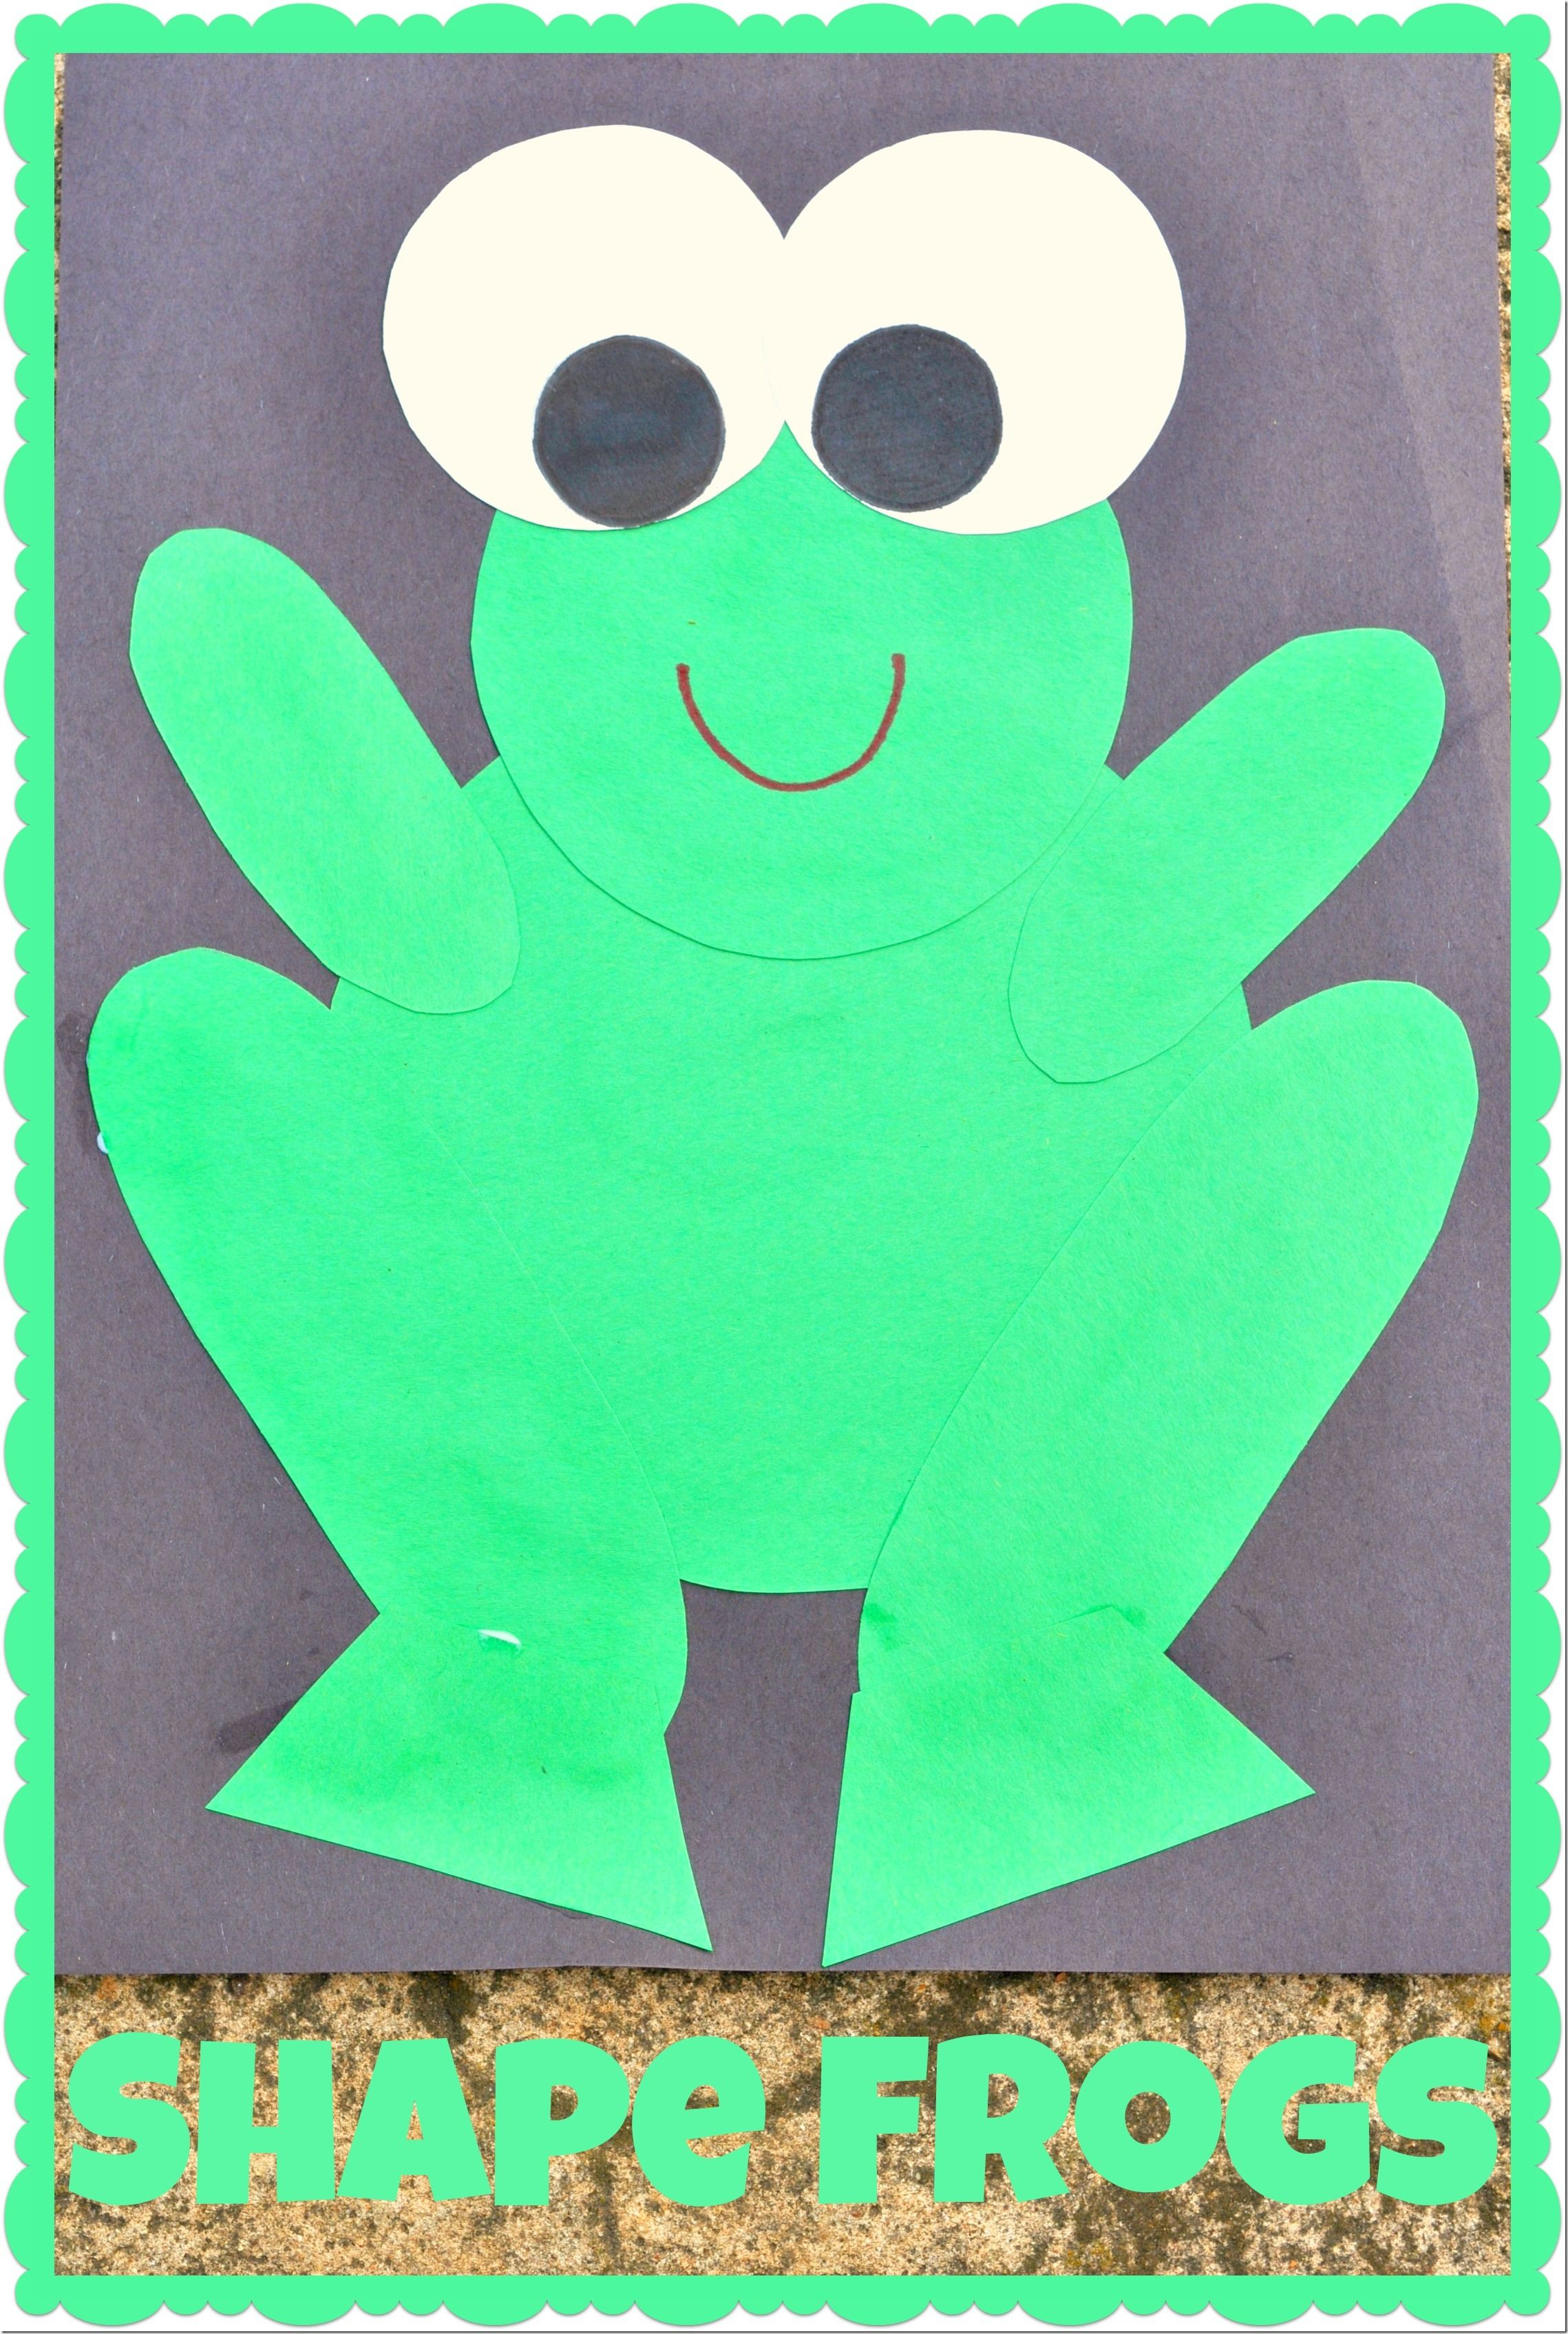 Shape frogs frog crafts and frogs for Frog crafts for preschoolers